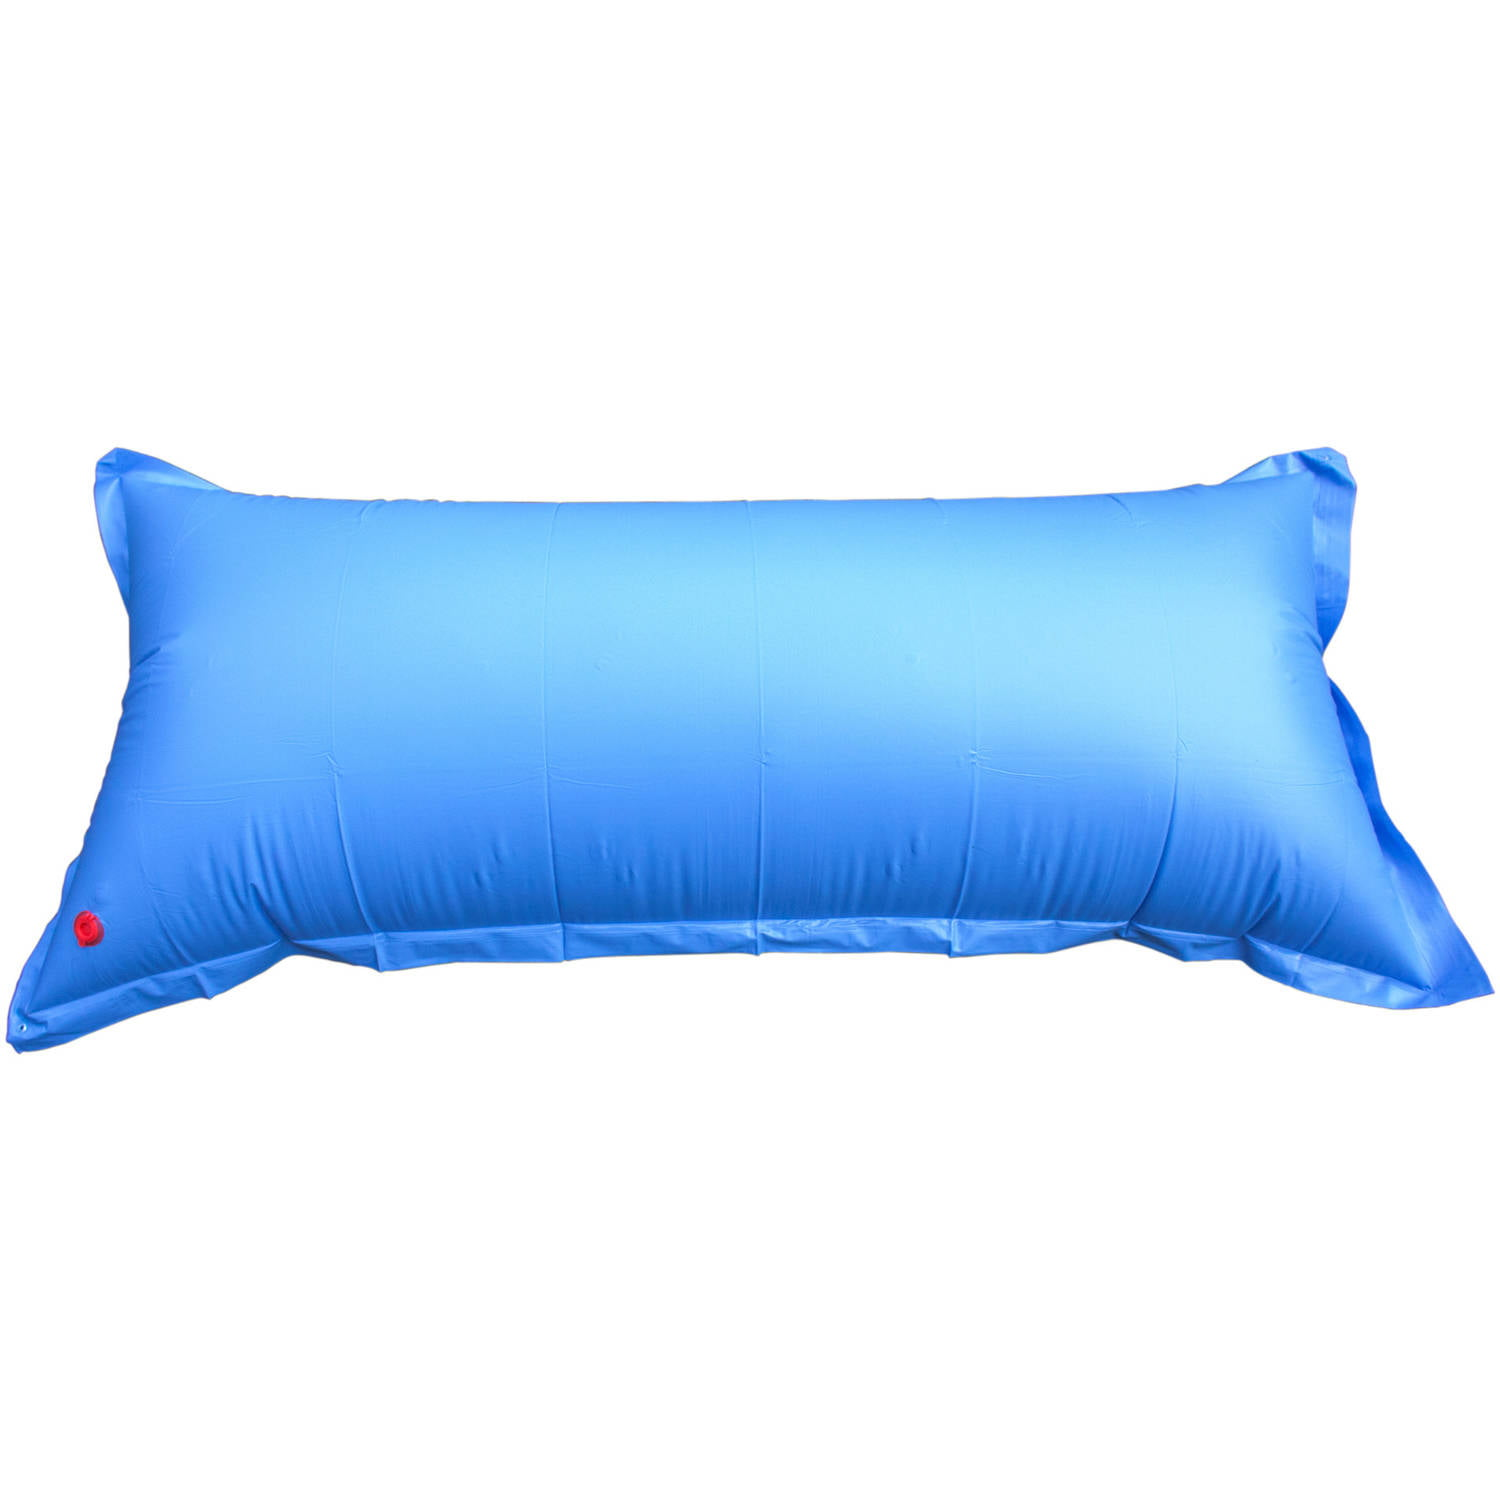 4' x 8' Ice Equalizer Pillow for Above-Ground Swimming Pool Covers by Robelle